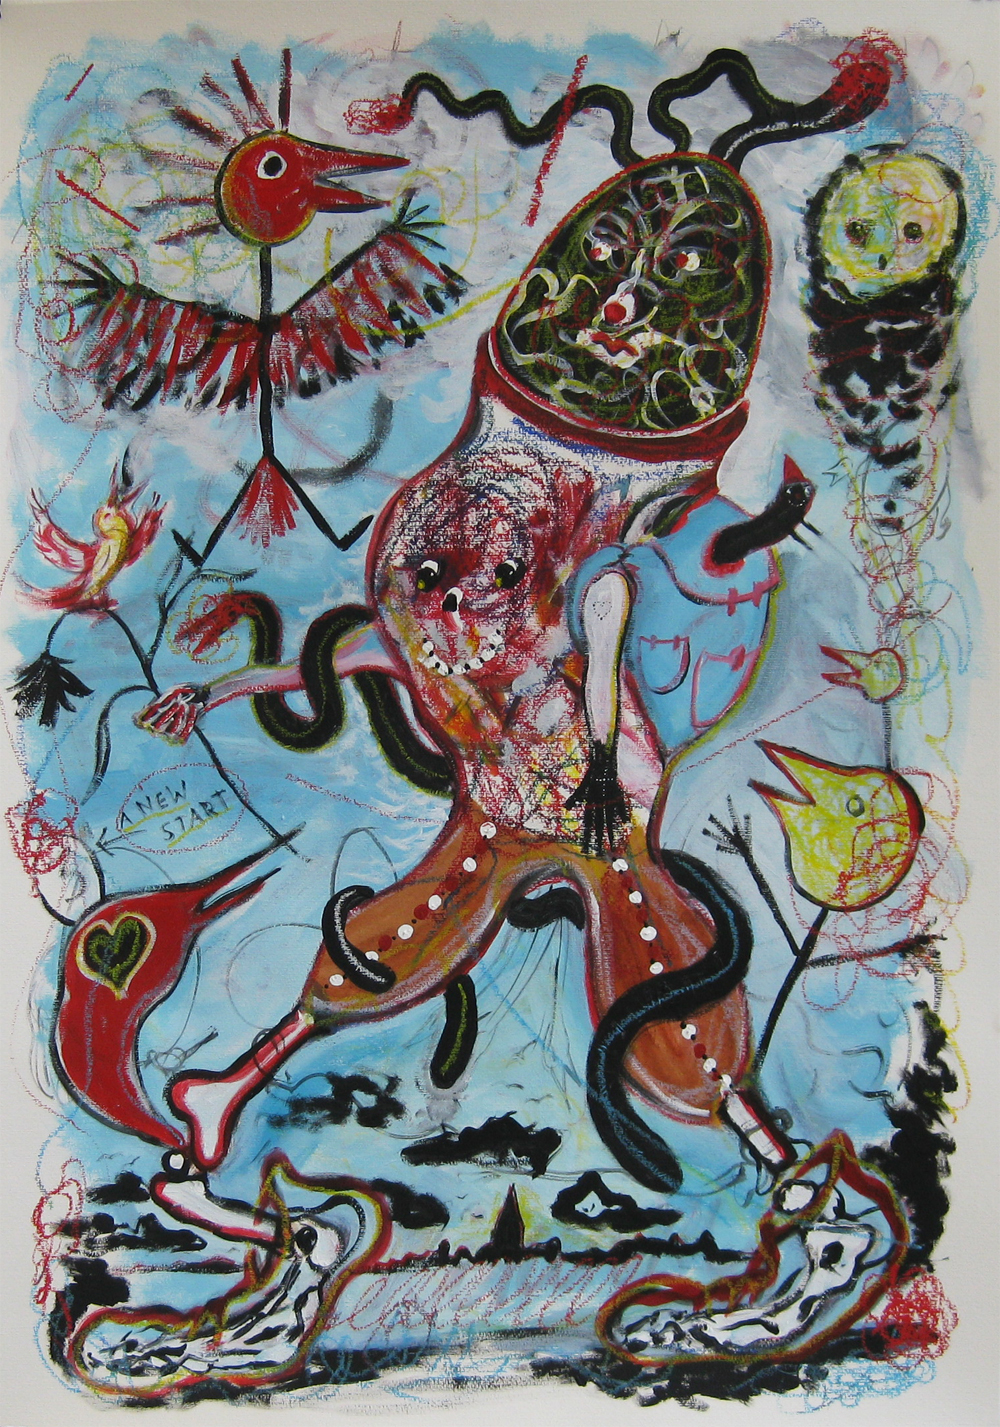 Chicken on the Run/Hühnerbein ging allein 70 x 100   Mixed media on Paper